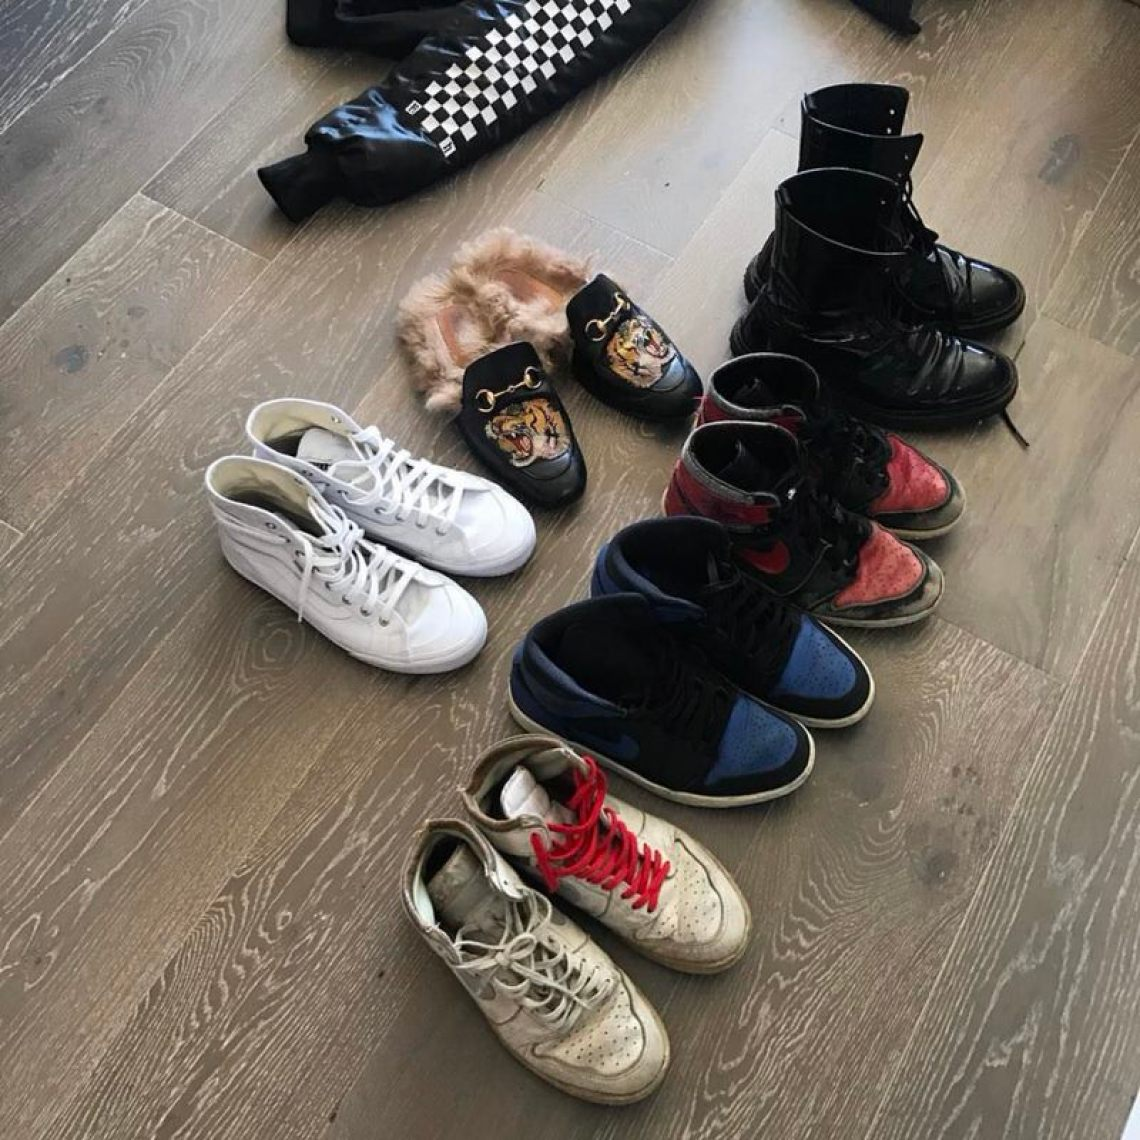 Rhuigi demonstrates that you can still have a footwear rotation that stomps without having to have a massive collection.